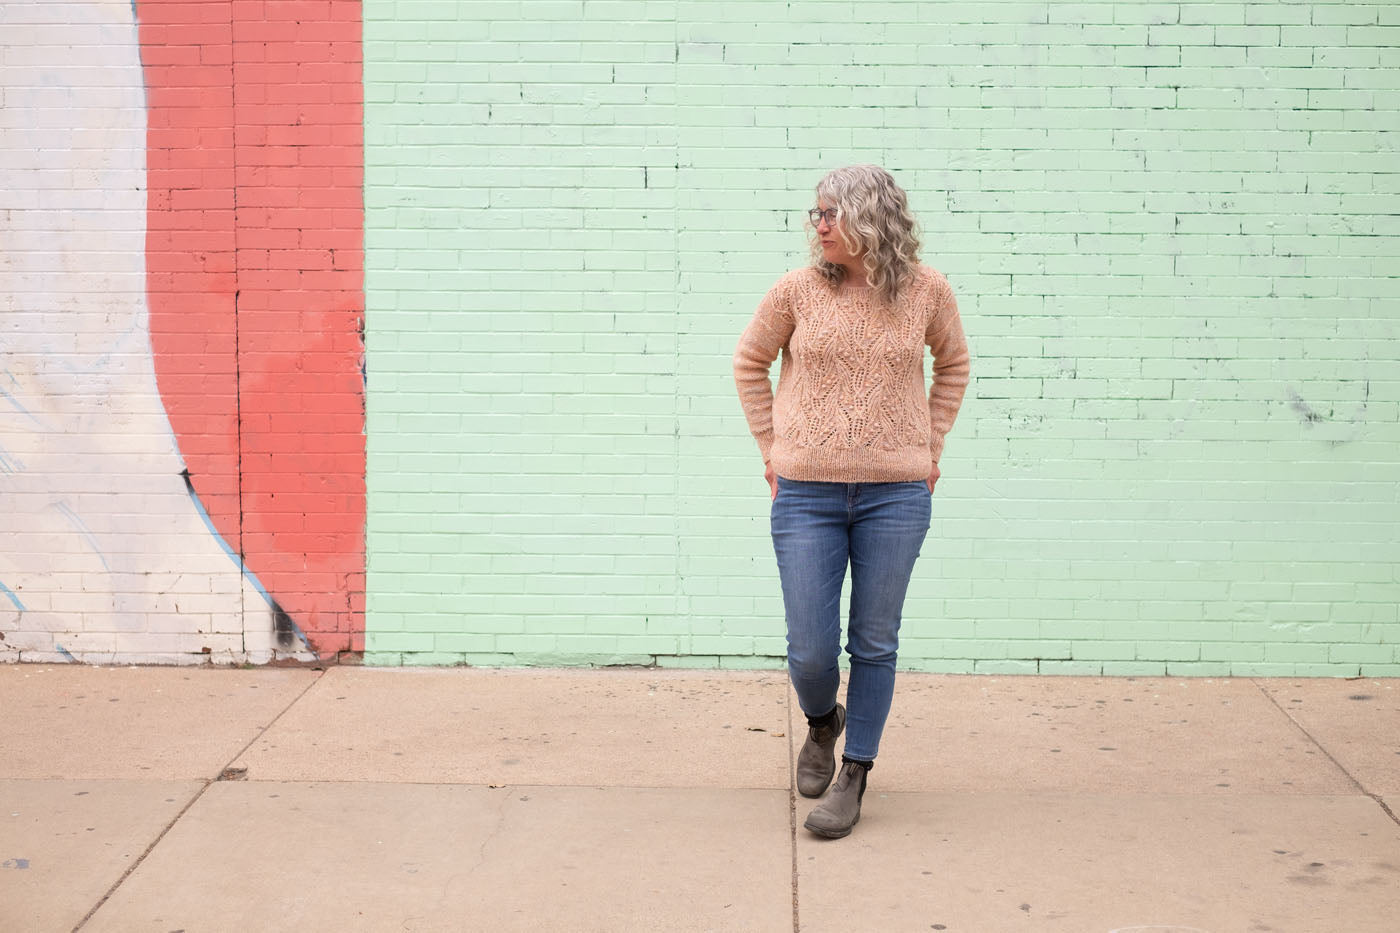 Jaime wears her peach hand-knit Atlantica pullover, standing in front of a colorfully painted mural wall in shades of mint, rose, and pale lavender.